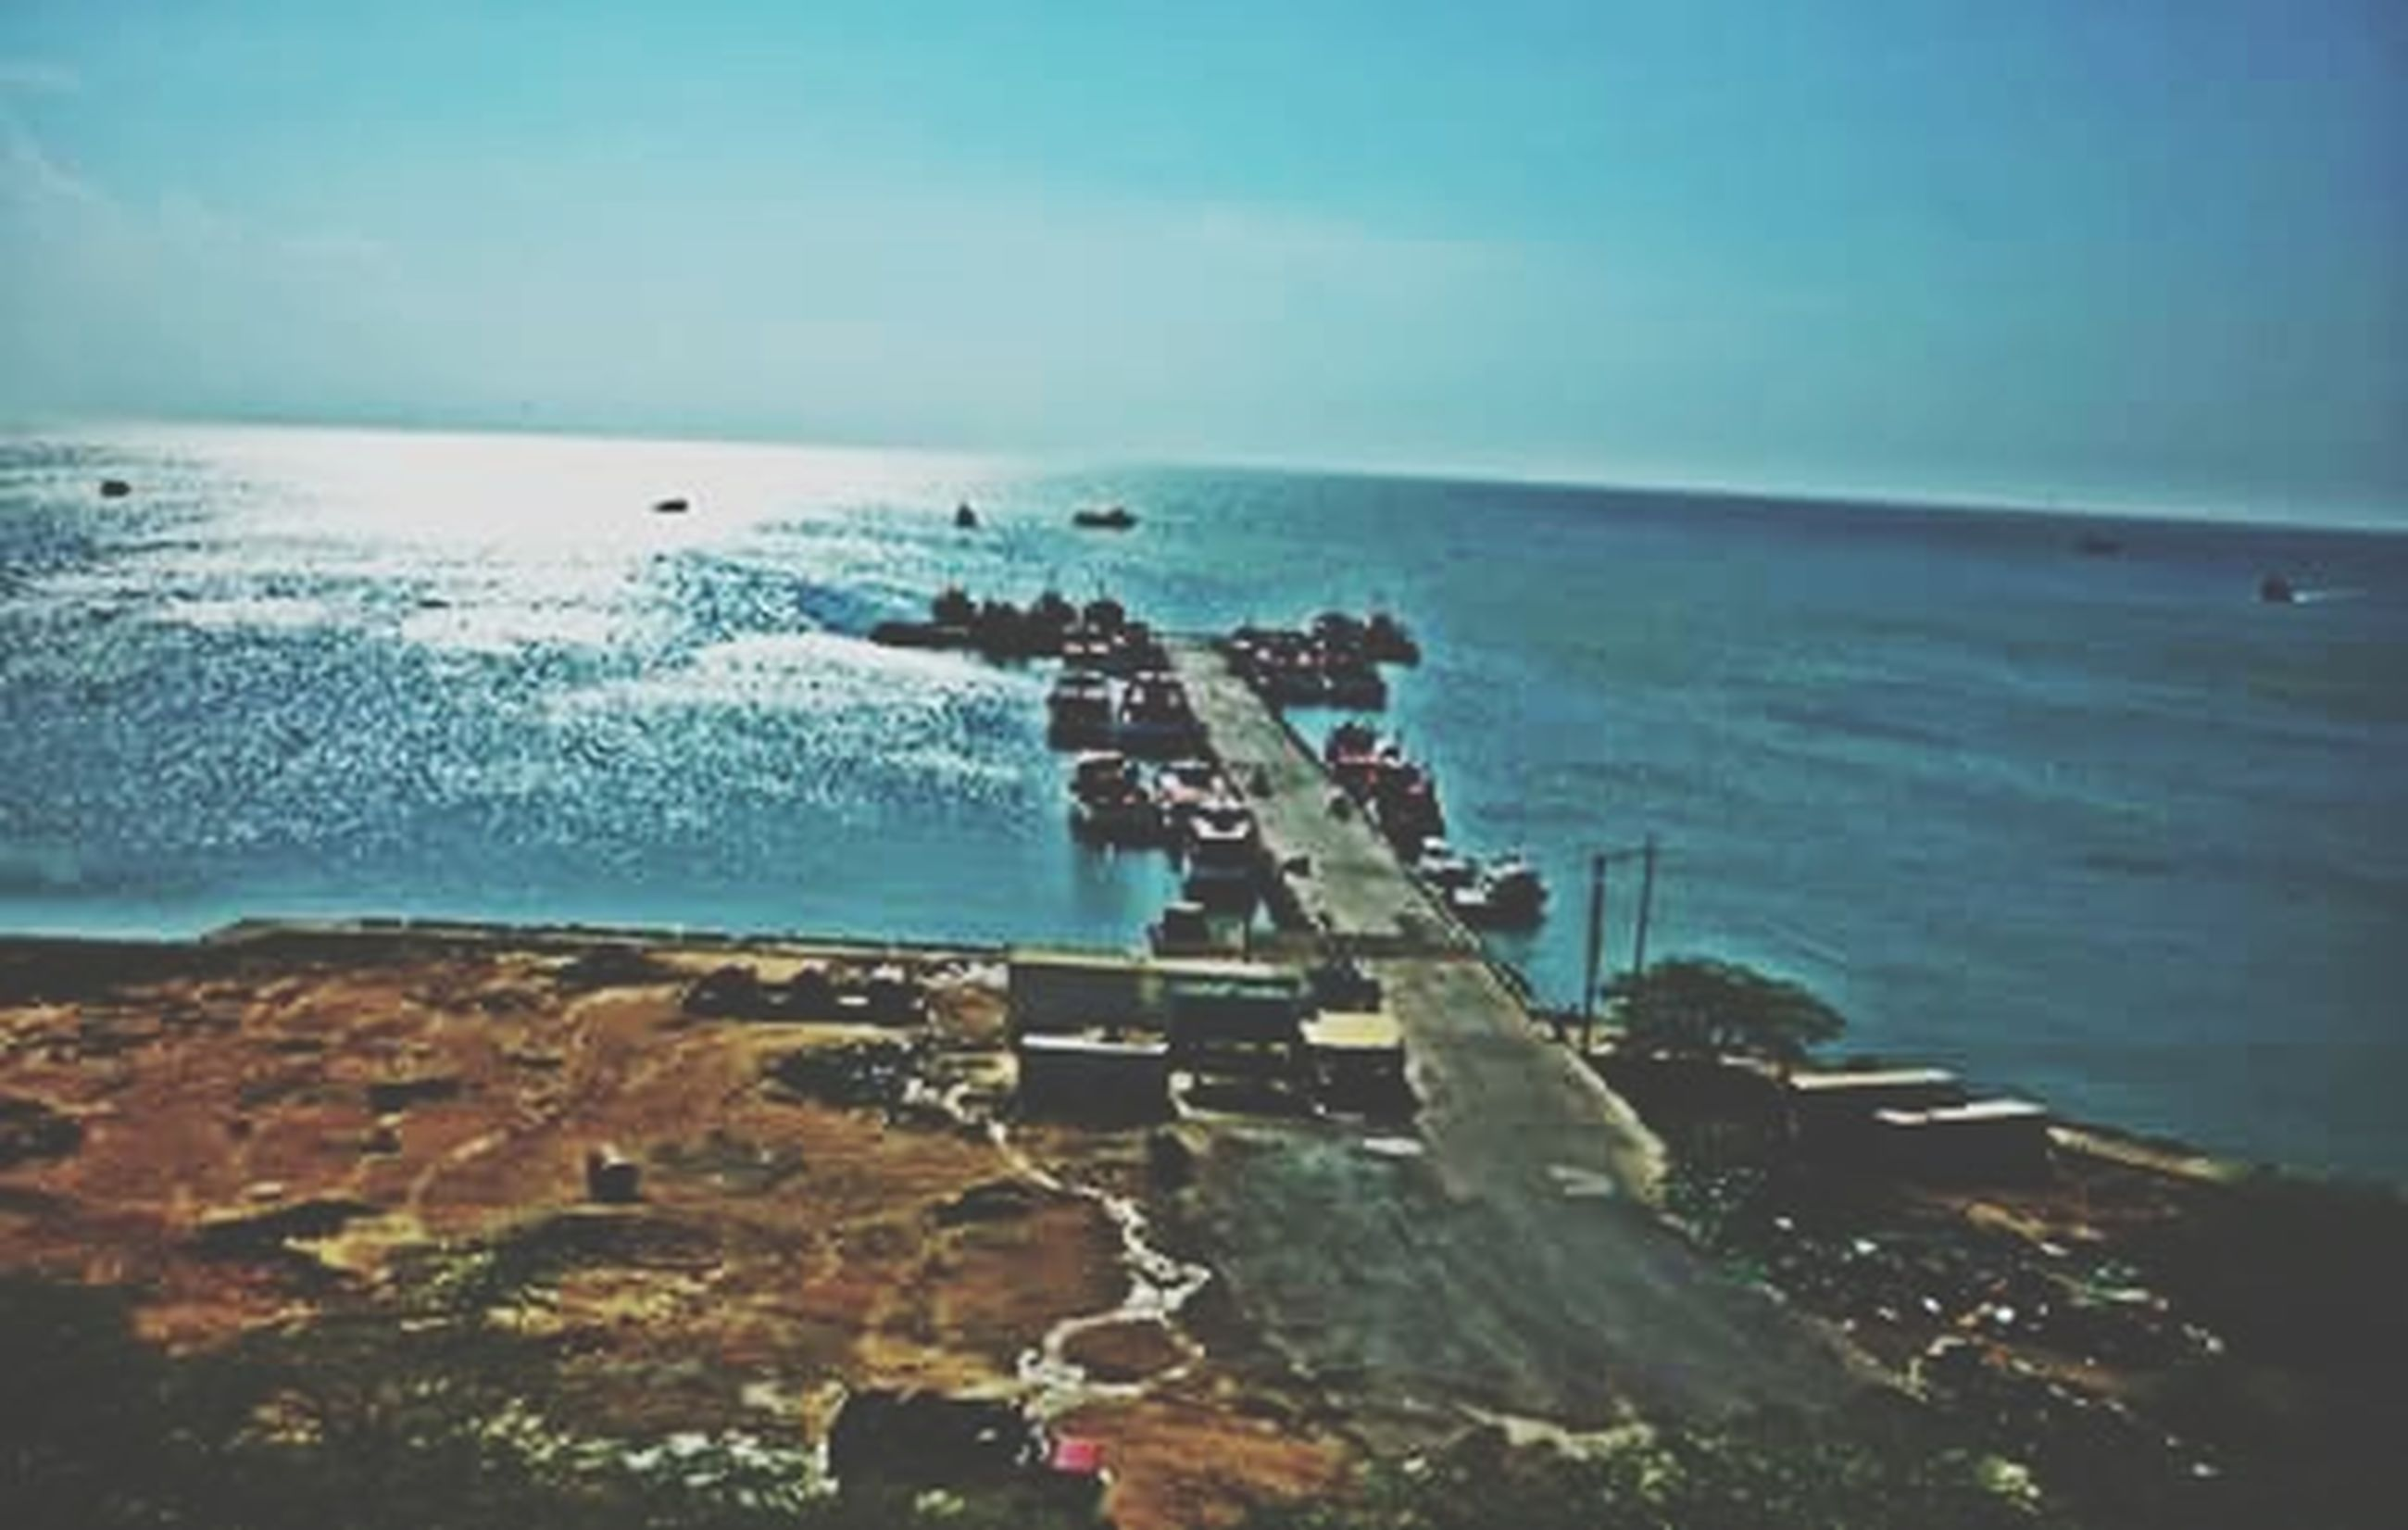 sea, horizon over water, water, beach, sky, shore, nautical vessel, nature, mode of transport, scenics, transportation, tranquility, beauty in nature, tranquil scene, high angle view, incidental people, outdoors, day, boat, rock - object